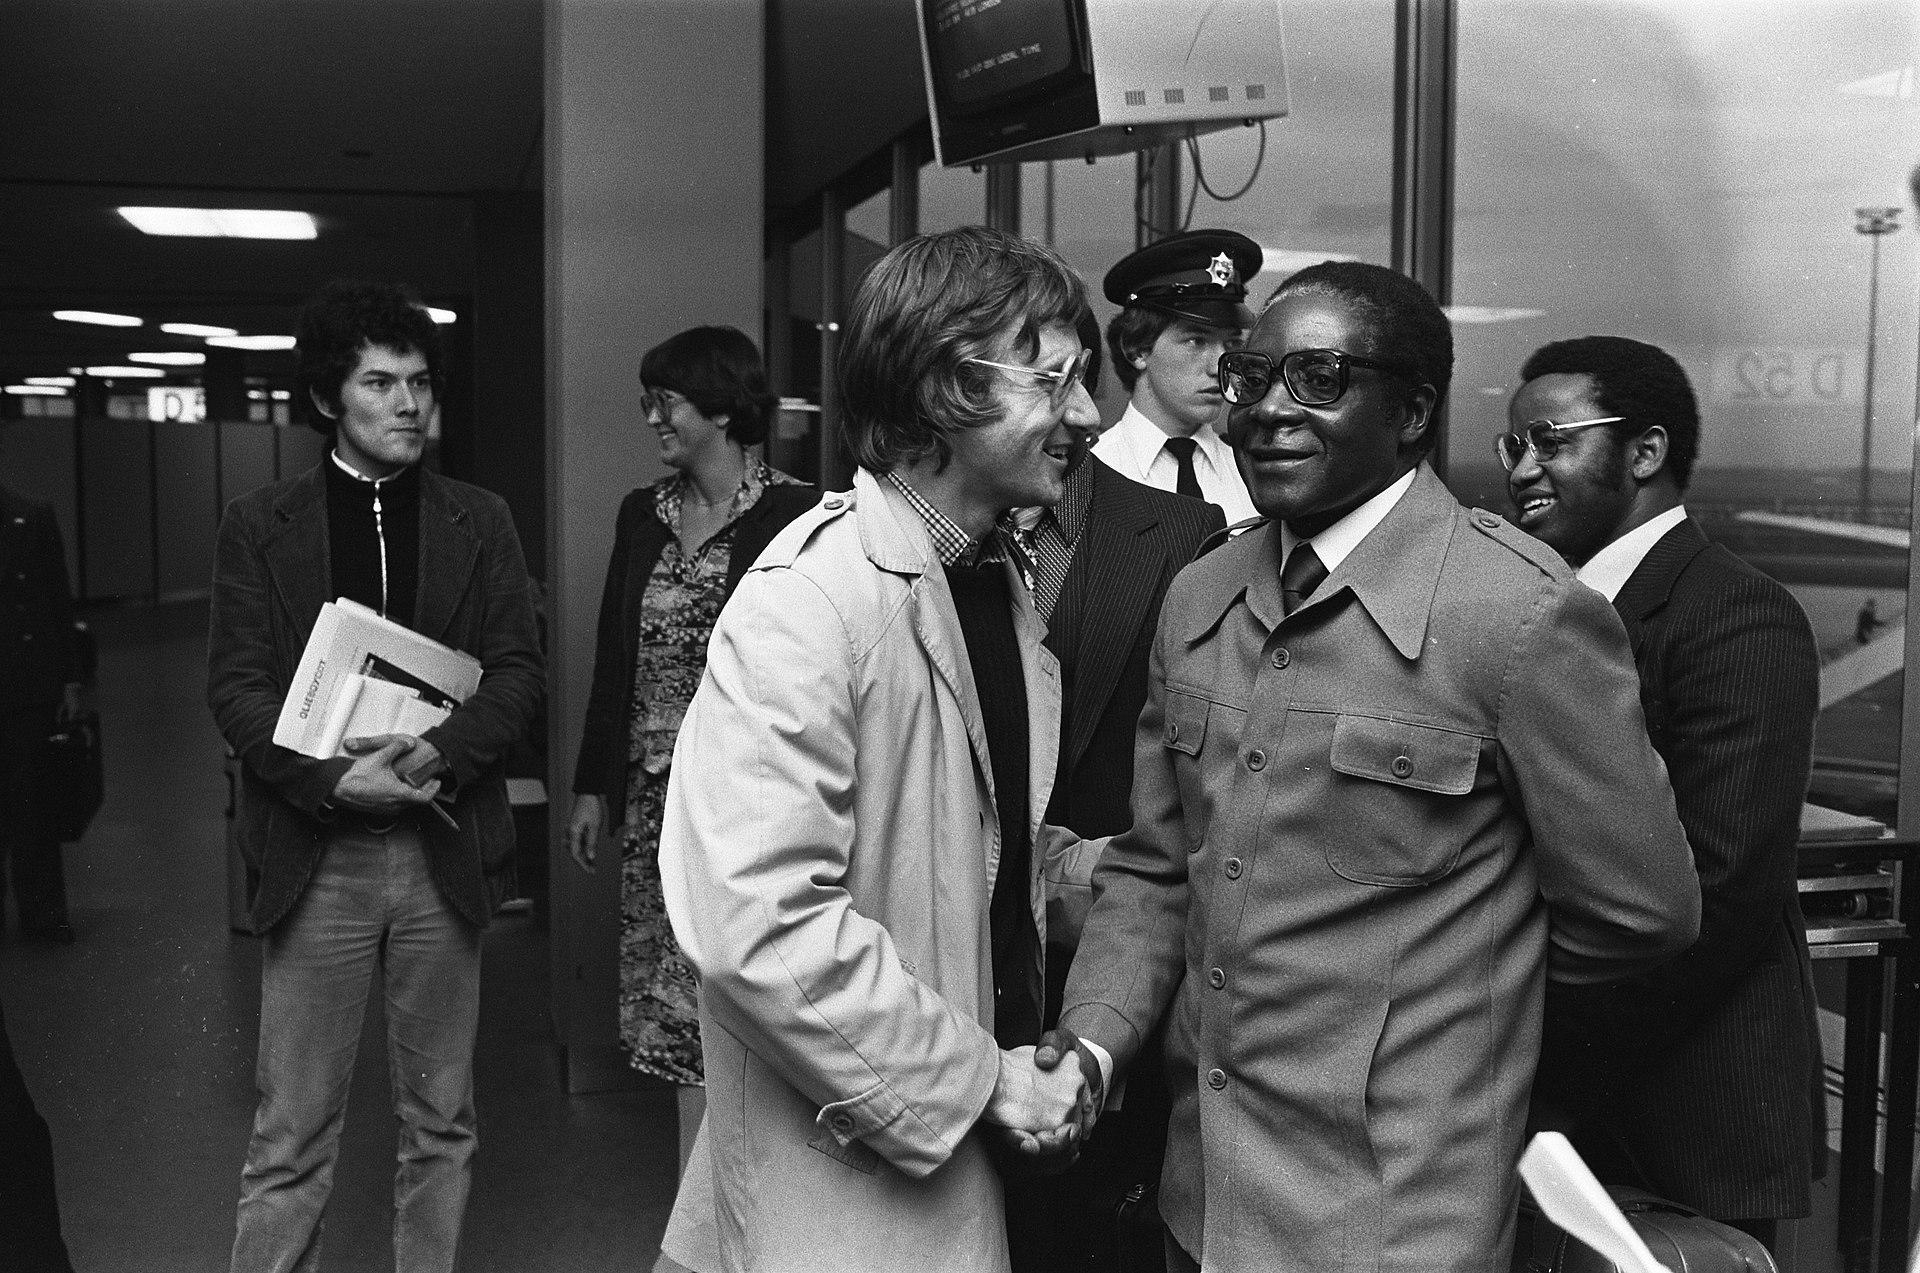 Robert Mugabe meets with activists from the Dutch Southern Africa Committee, Schiphol, Netherlands, October 19, 1979. (Koen Suyk/Anefo)